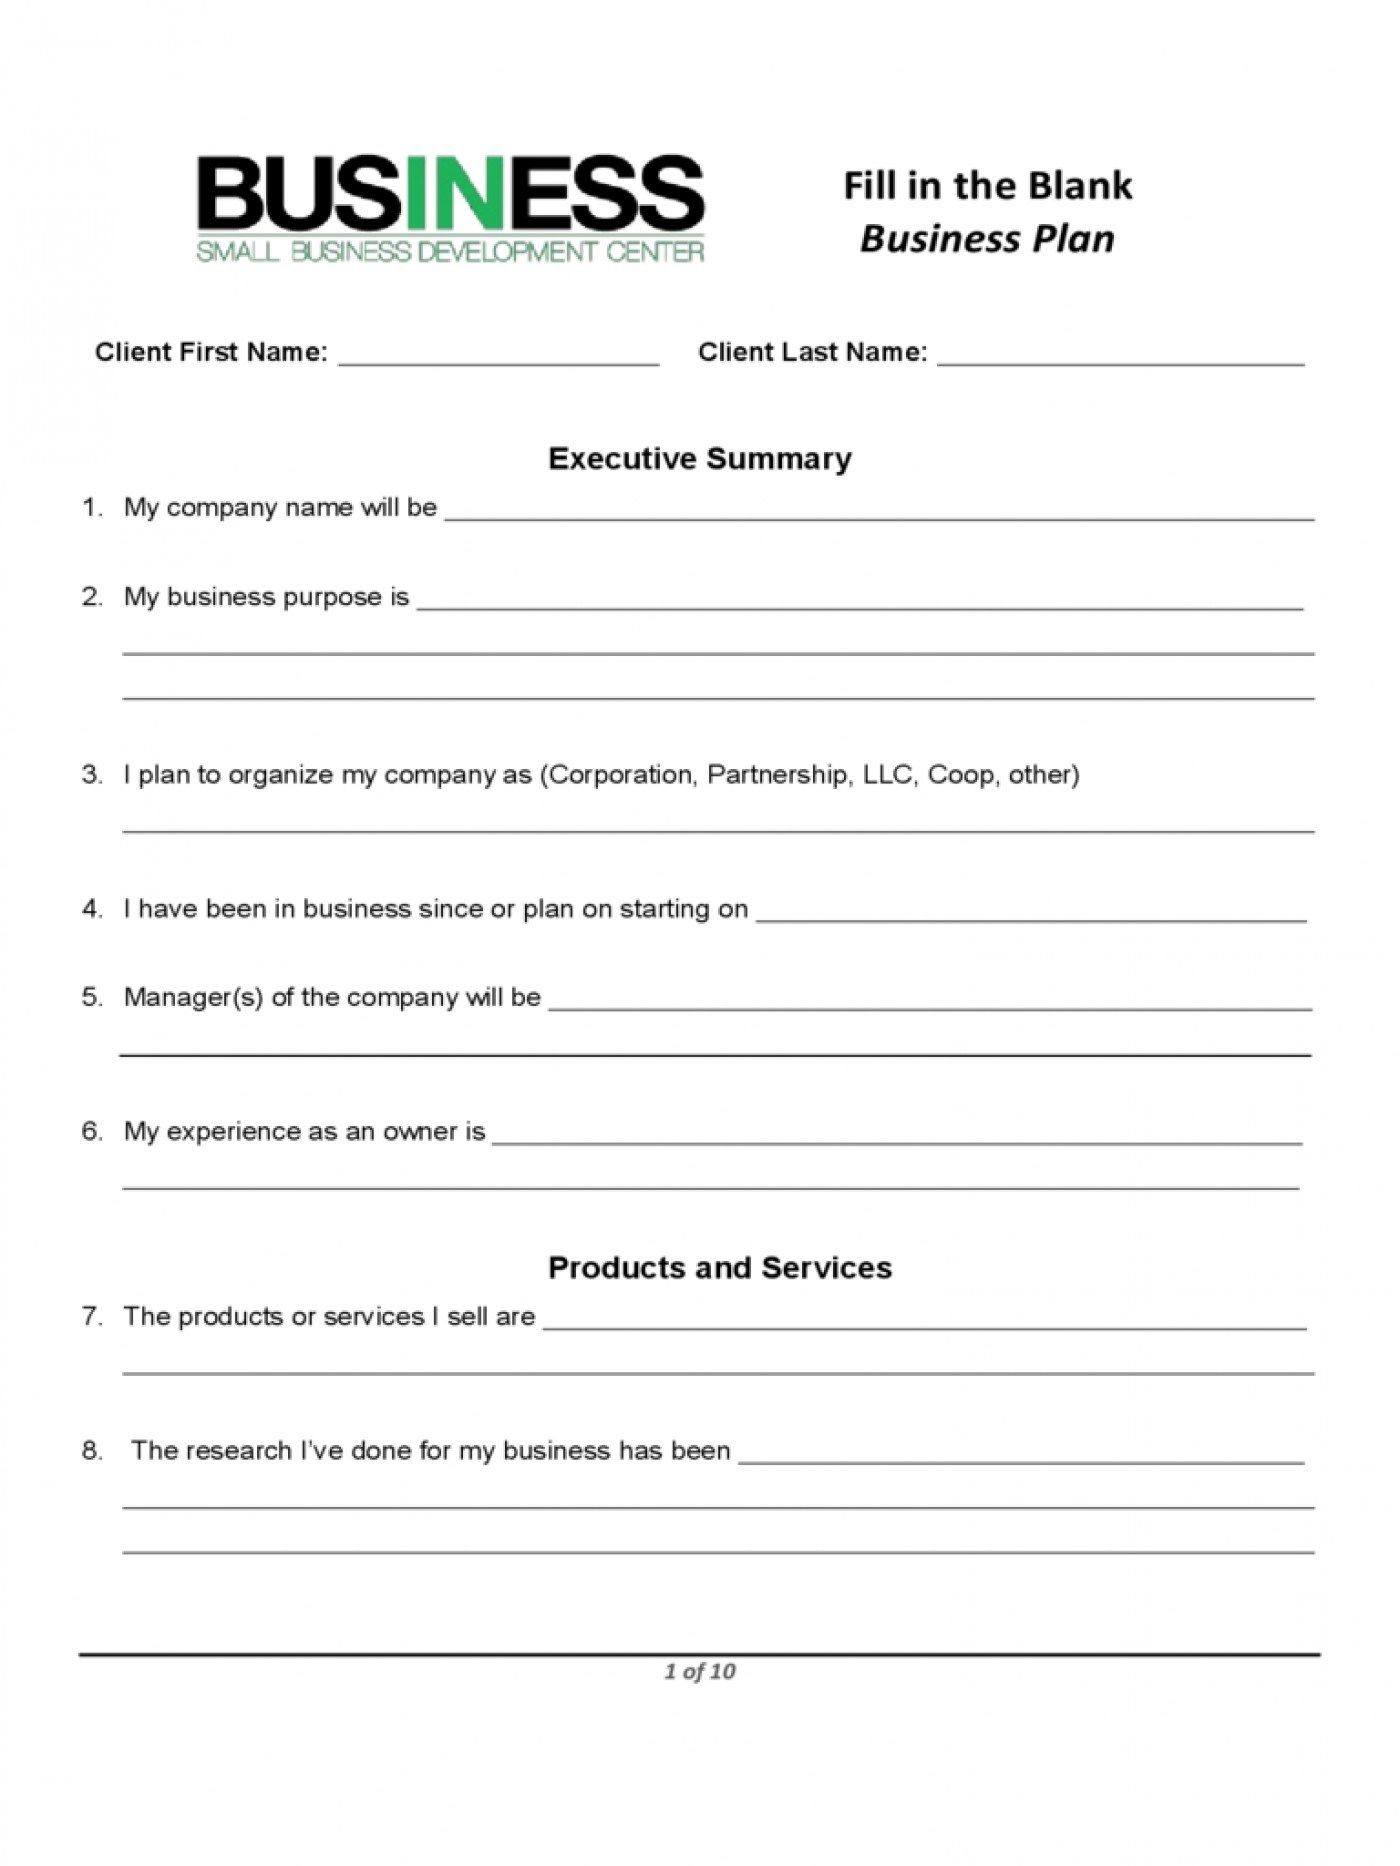 012 Business Plan Template Free Word Printable Proposal With Business Plan Simple Business Plan Template Business Plan Template Free Business Plan Template Pdf